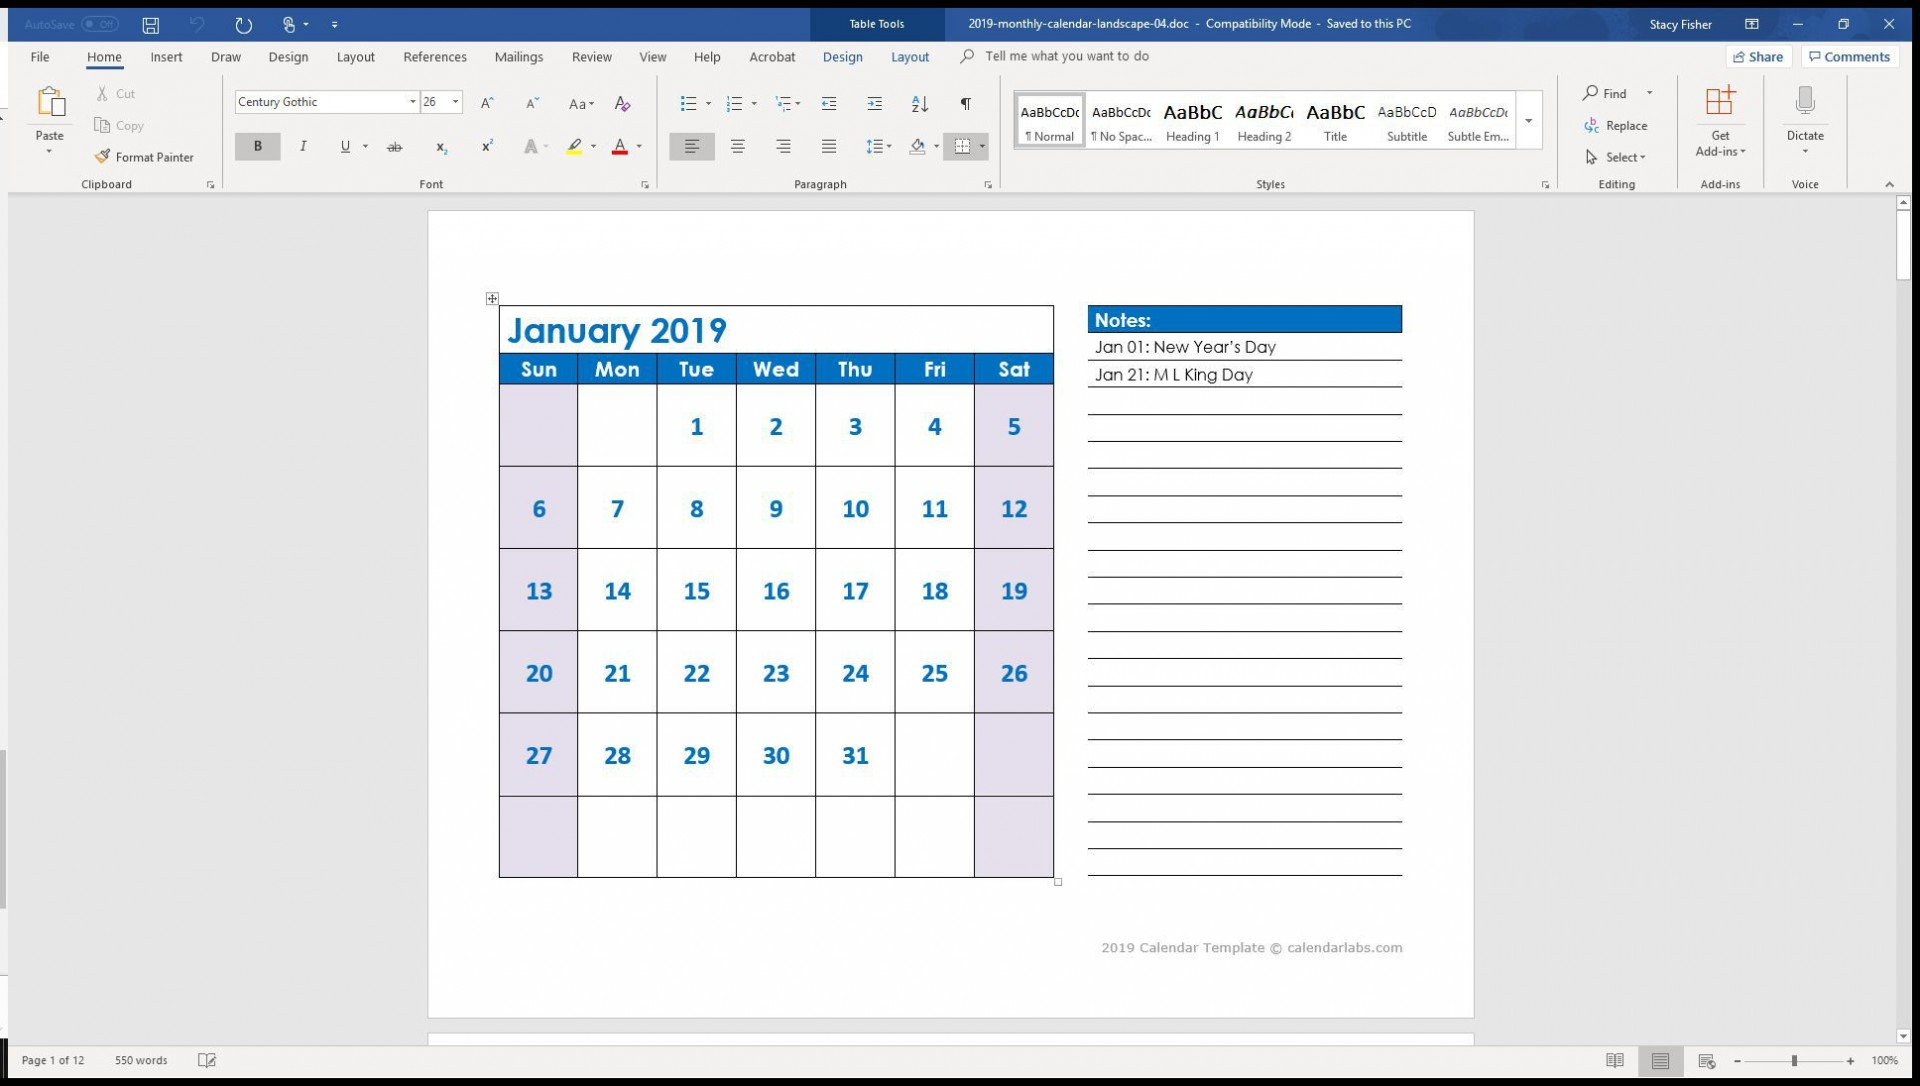 005 Archaicawful Calendar Template For Word 2010 Design  2019 Microsoft1920